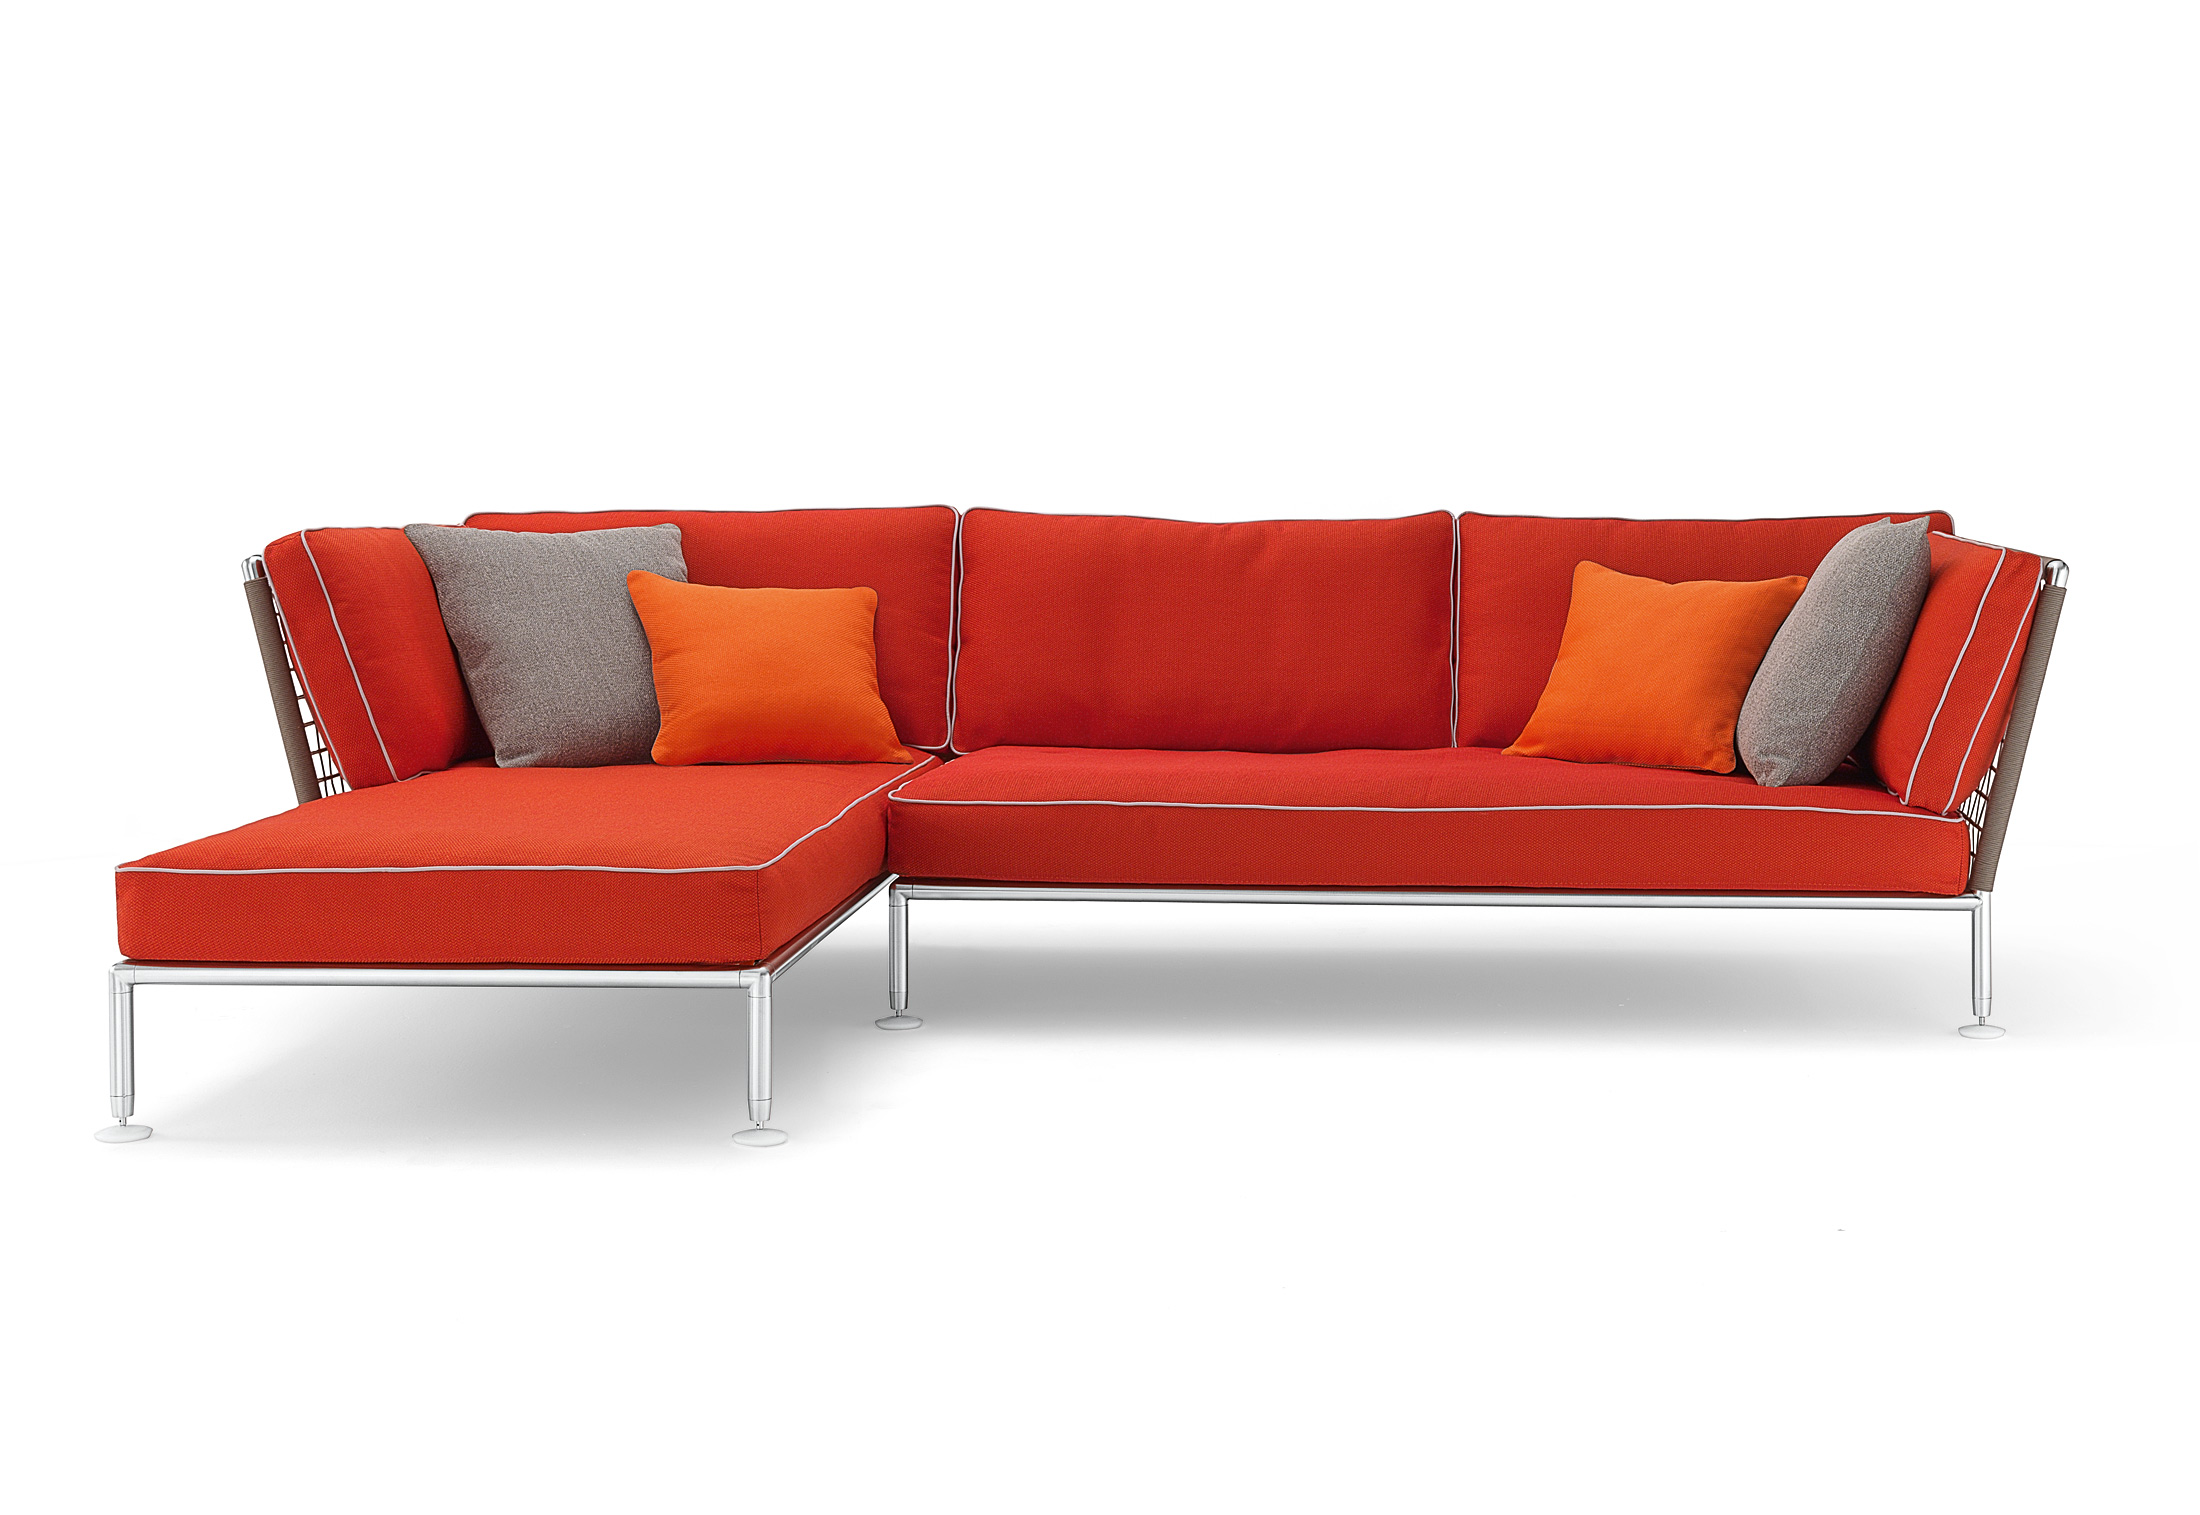 Recamiere simple sofa manon n with recamiere gallery of for Sofa recamiere